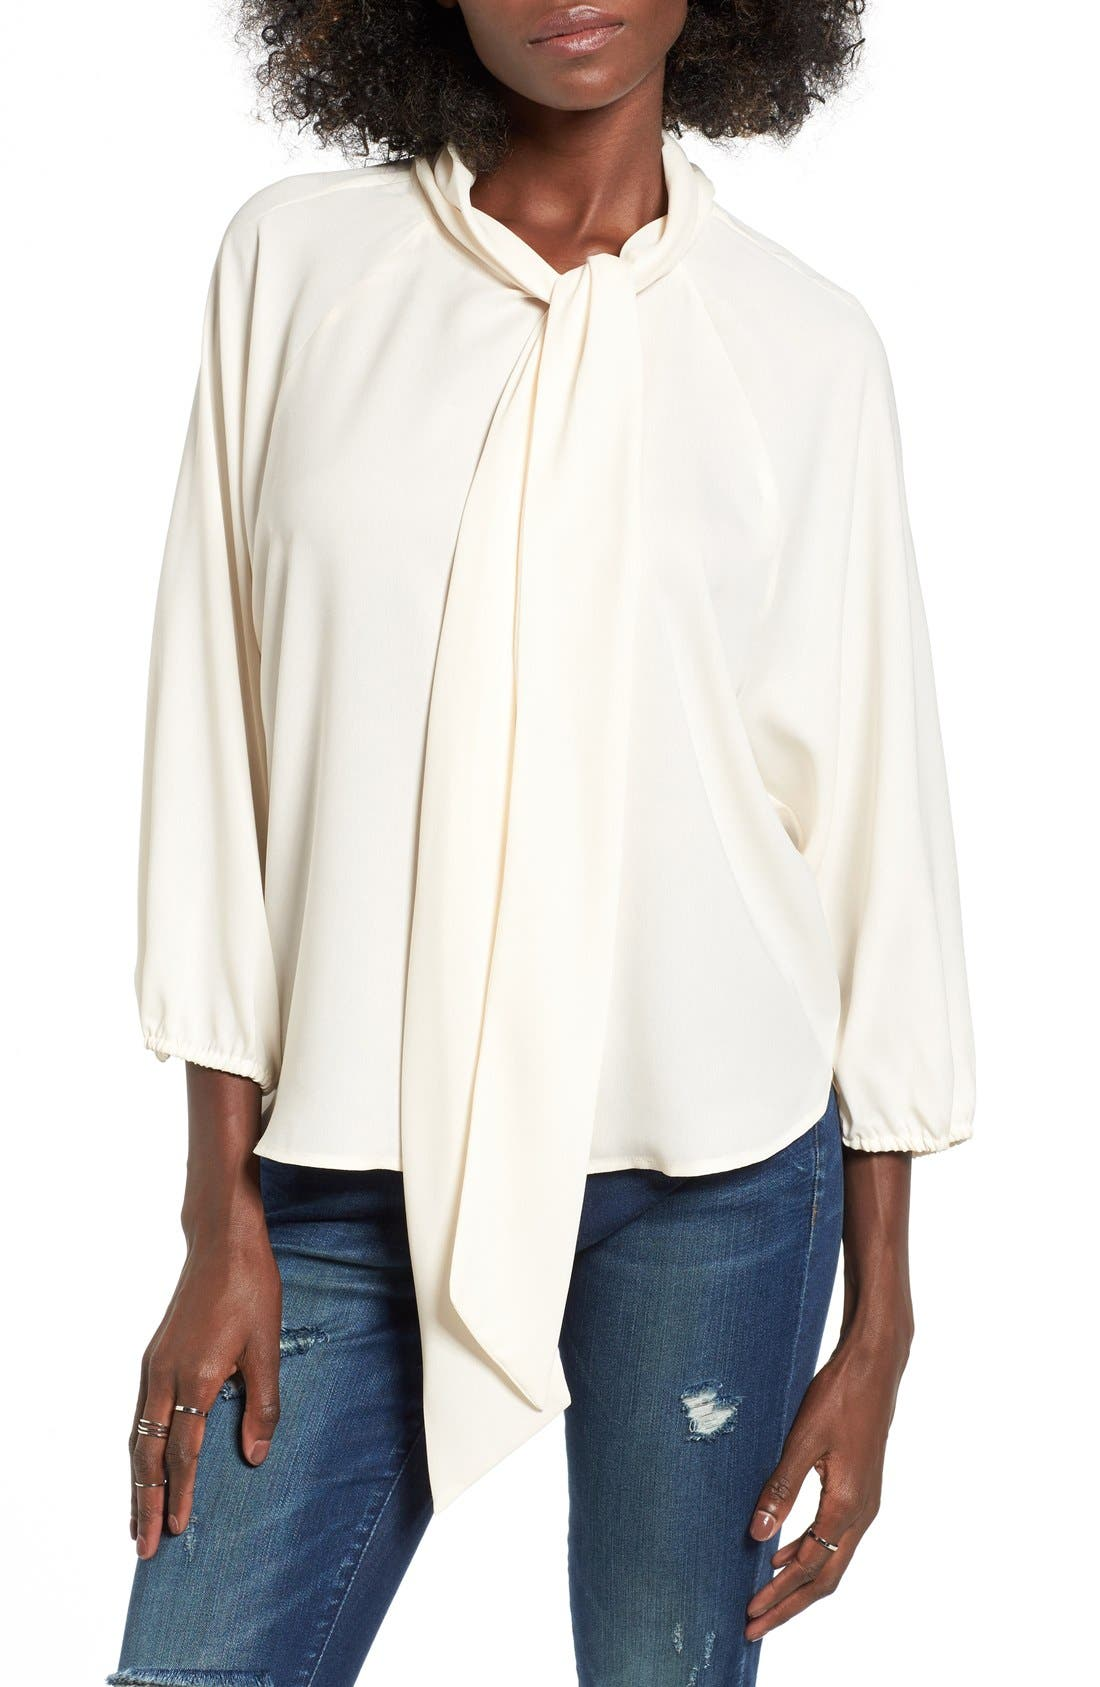 Alternate Image 1 Selected - Leith Tie Neck Blouse